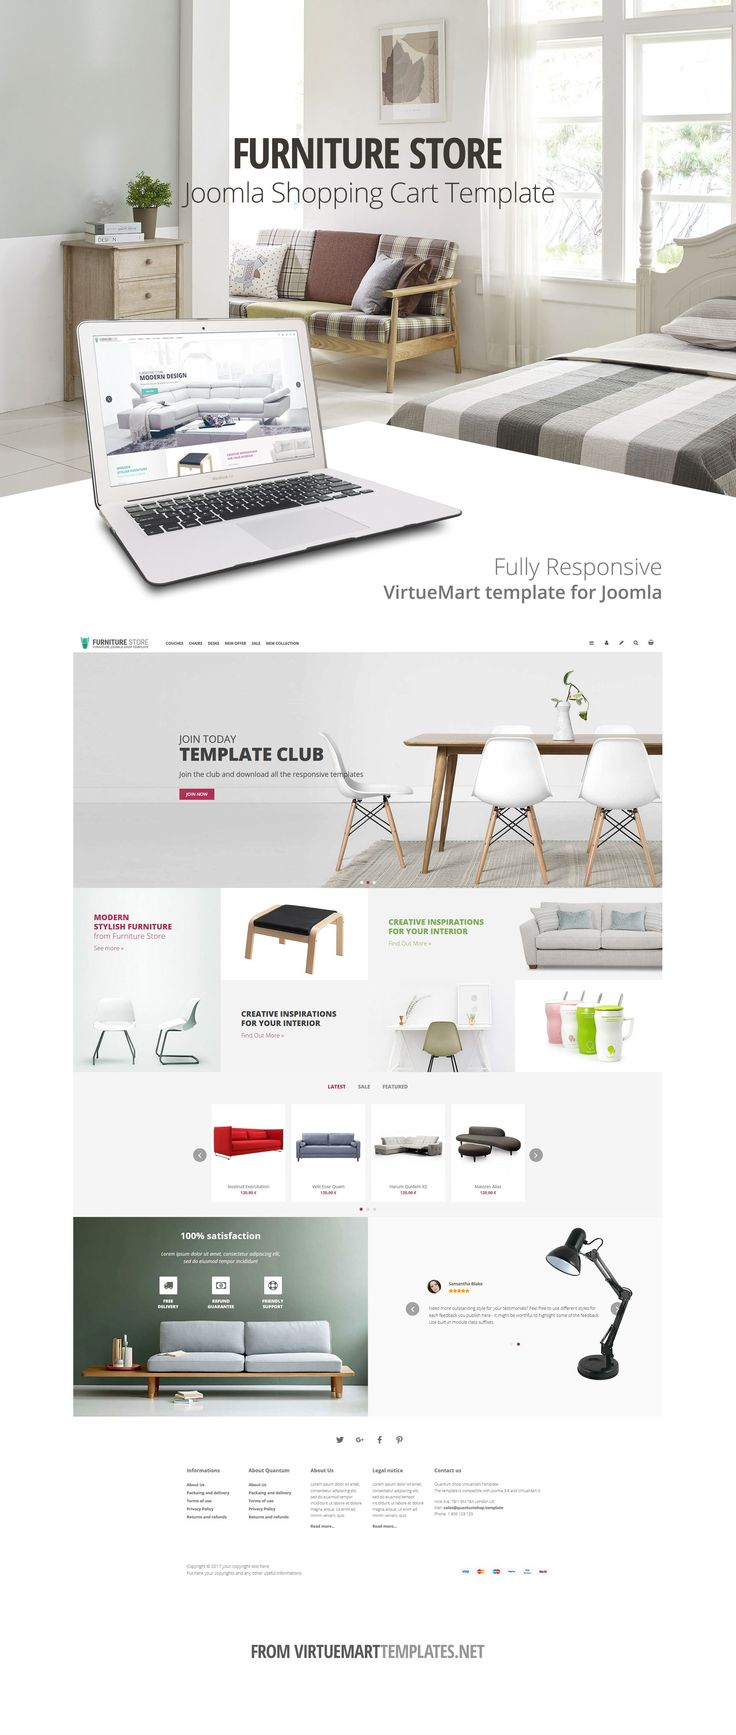 Furniture Store is a fully #responsive #Joomla #shop #template we have developed for latest version of Joomla and #VirtueMart. Sell your #furniture, #interior #design and other great stuff with Furniture Store #Joomla #template today